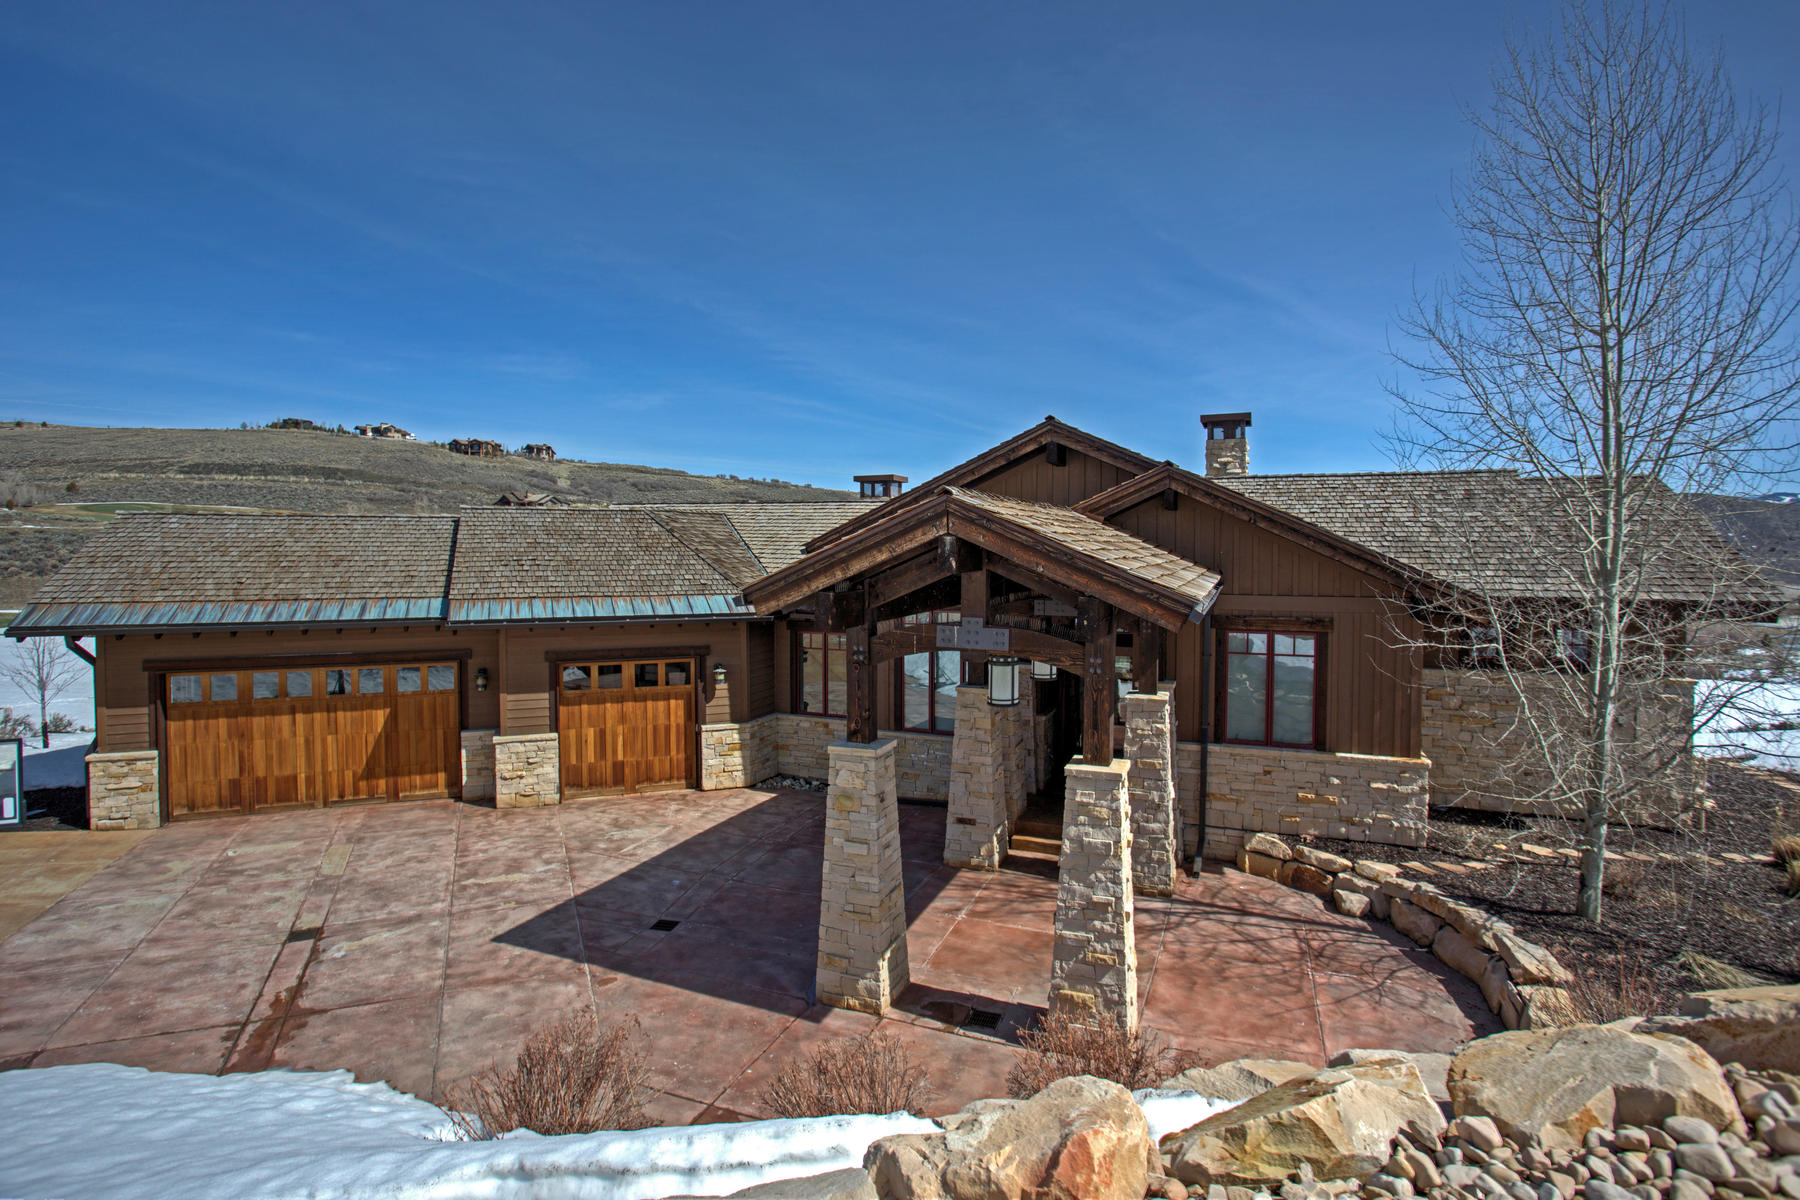 Maison unifamiliale pour l Vente à Entertainer's Dream Home with Membership Included 9110 N Uinta Dr Heber City, Utah, 84032 États-Unis